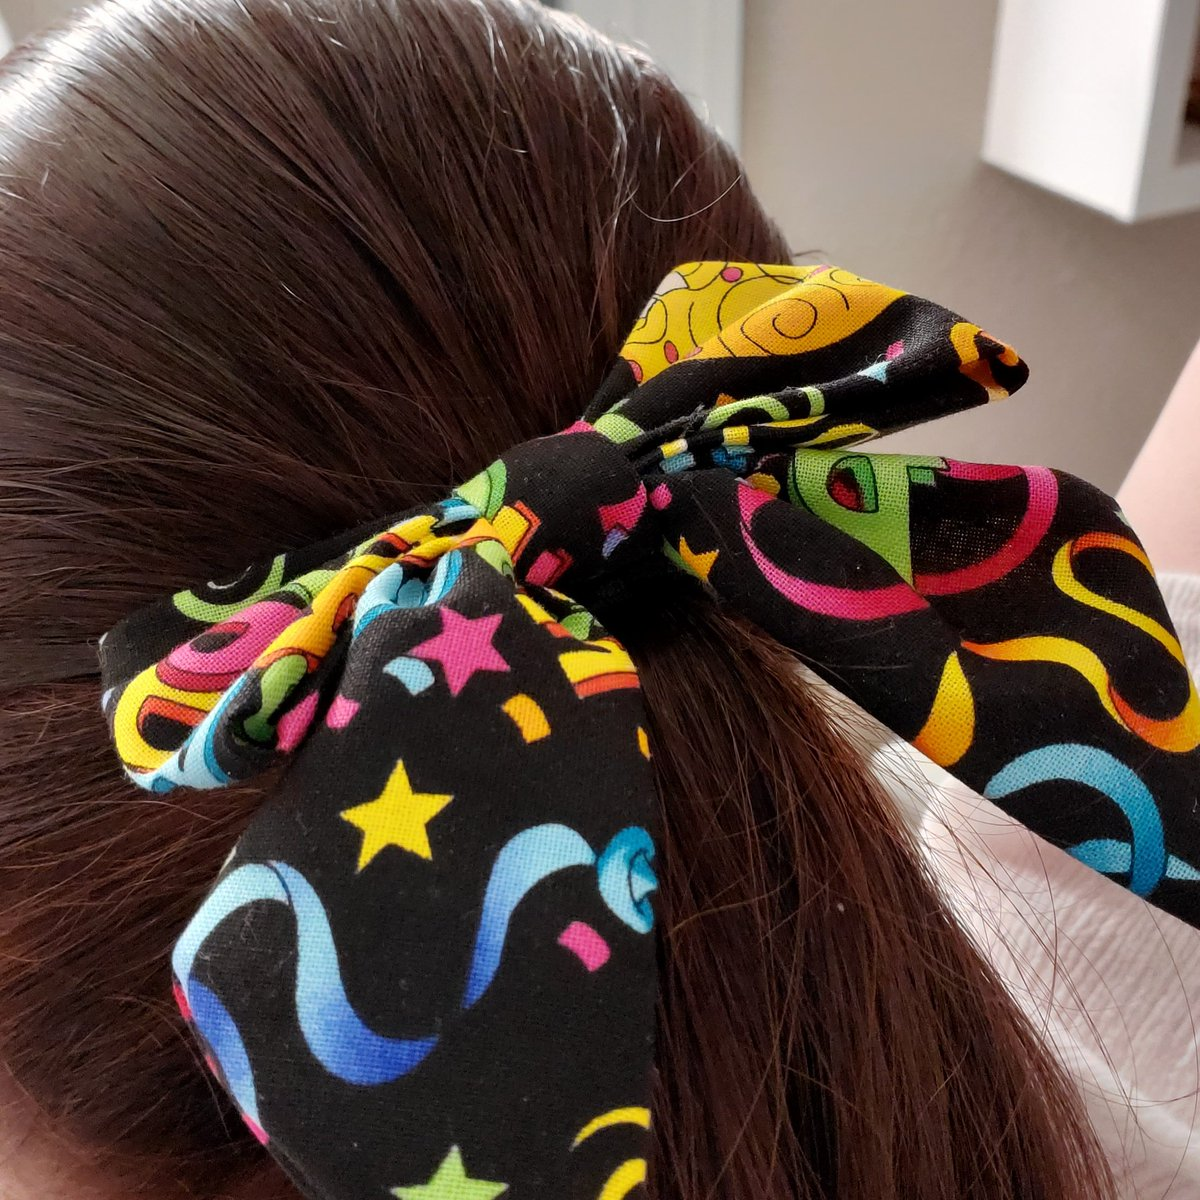 Happy Birthday to me!  Birthday bow for the win today. https://etsy.com/shop/SarahBBowtique…  #itsmybirthday #SarahBBowtique #birthdaybows #48andfabulous #48andcanstillhavefun #hairbows #hairaccessories #bowsareforallagespic.twitter.com/A9cMvH8bya